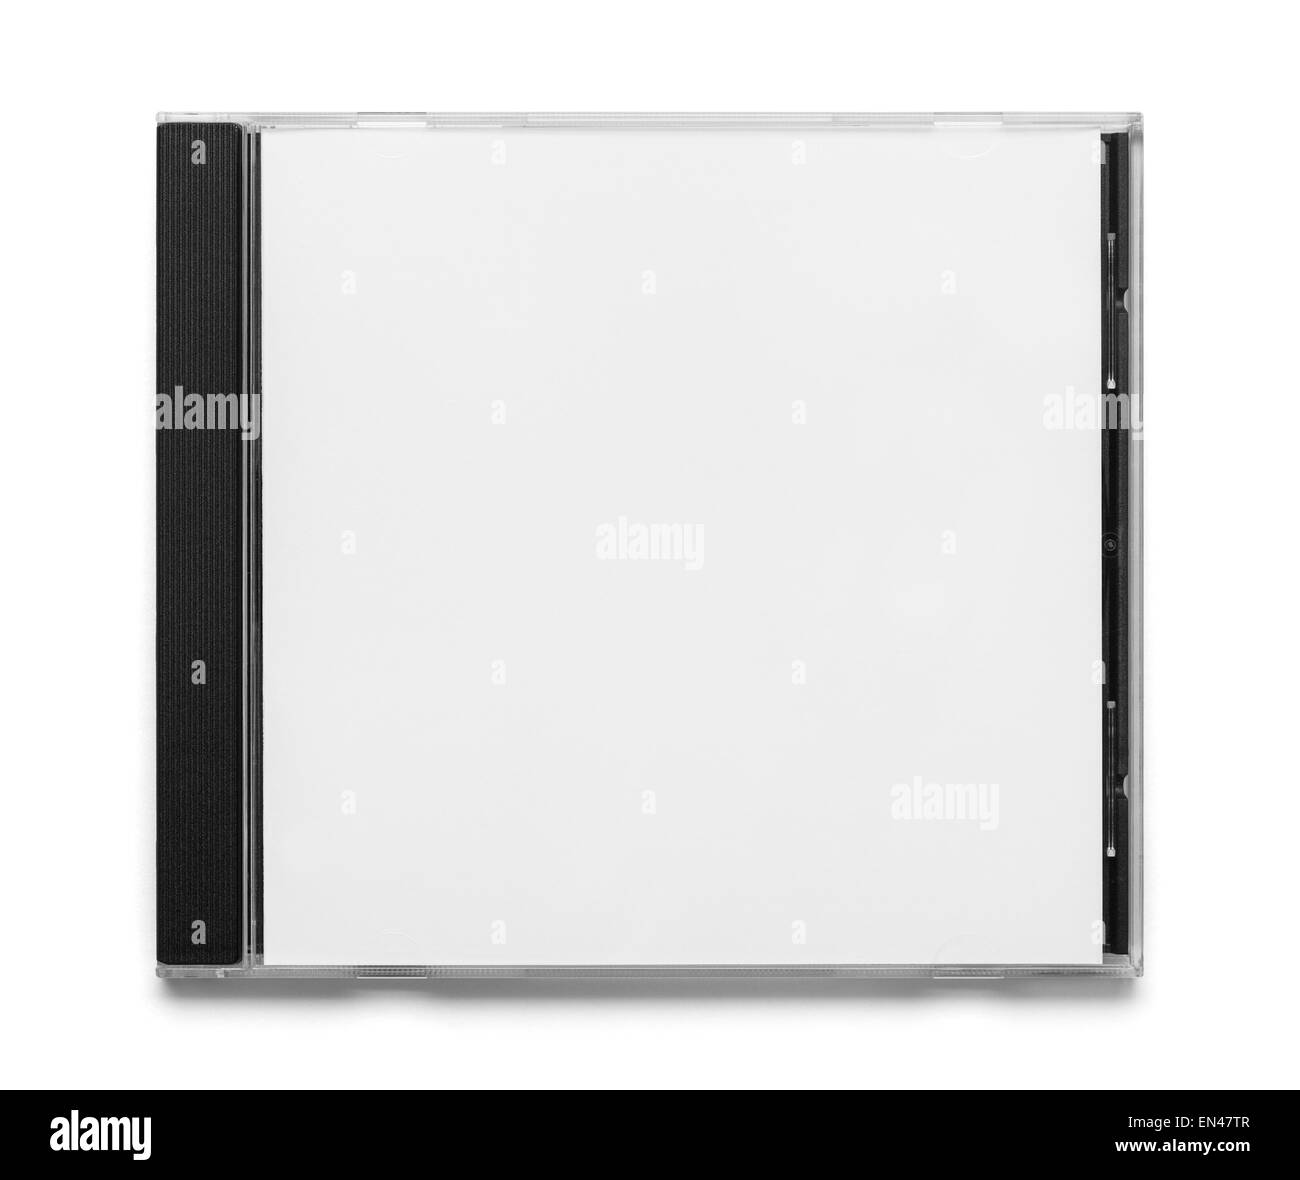 Blank Black and White CD Case Top View Isolated on White Background. - Stock Image